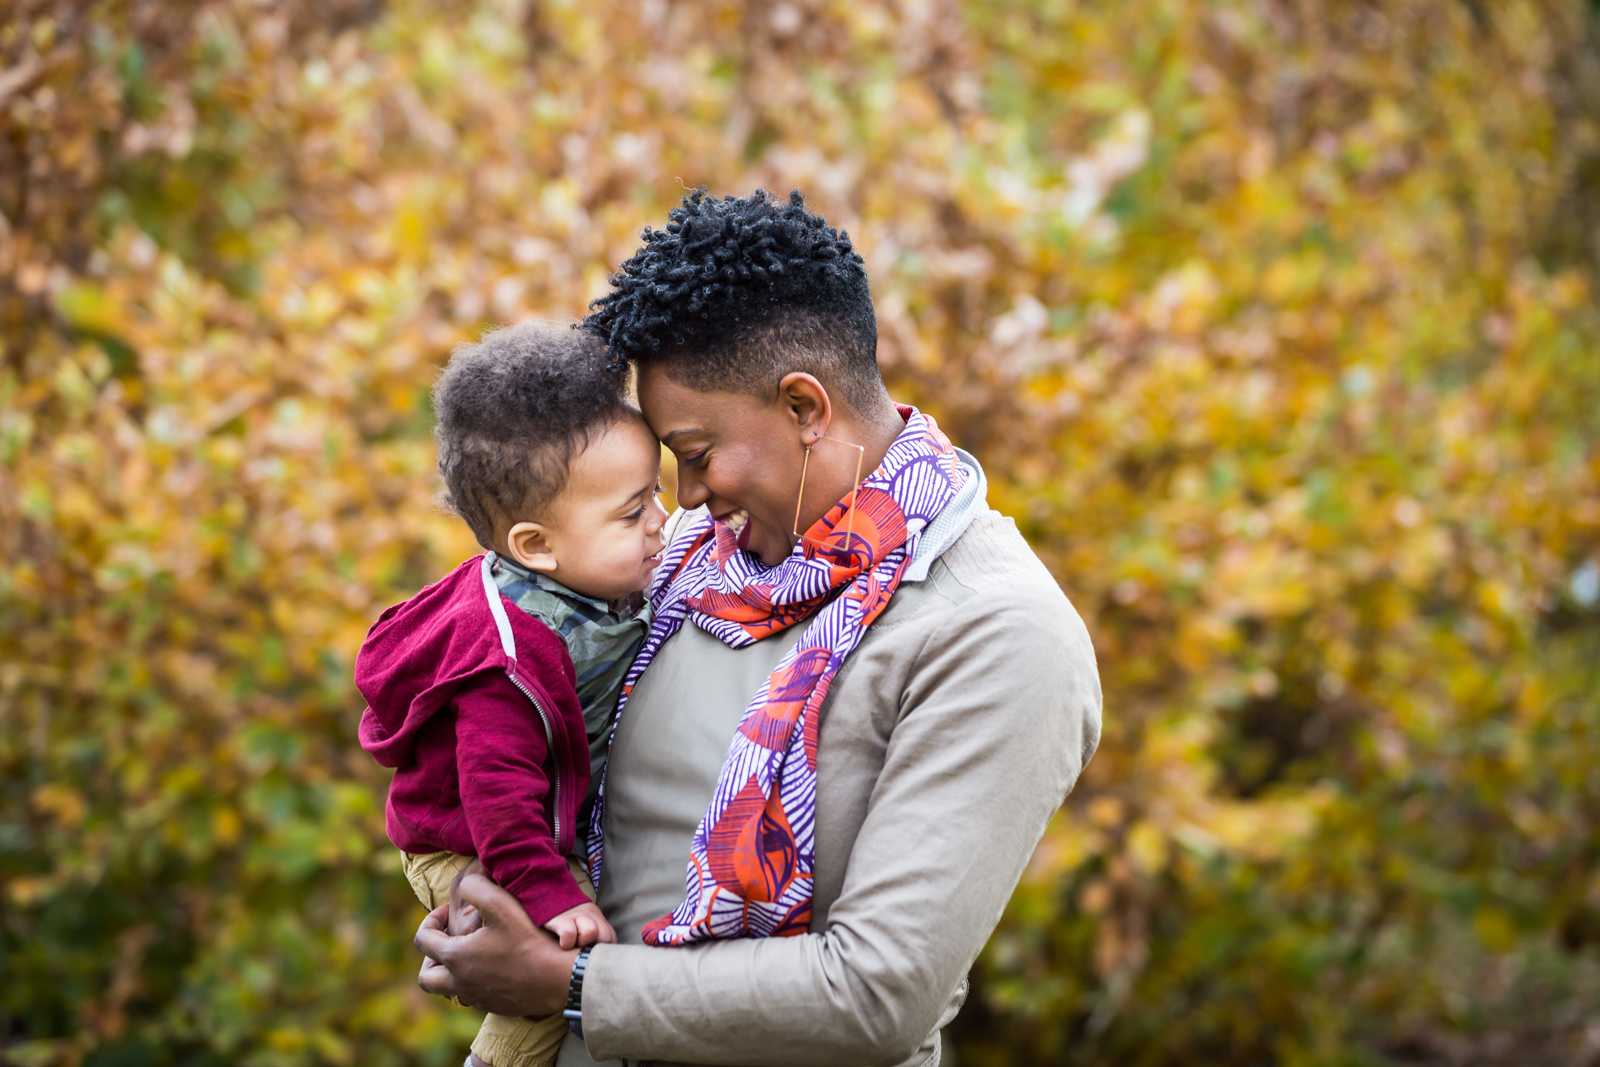 Flushing Meadows Corona Park family portrait of mother and little boy touching foreheads